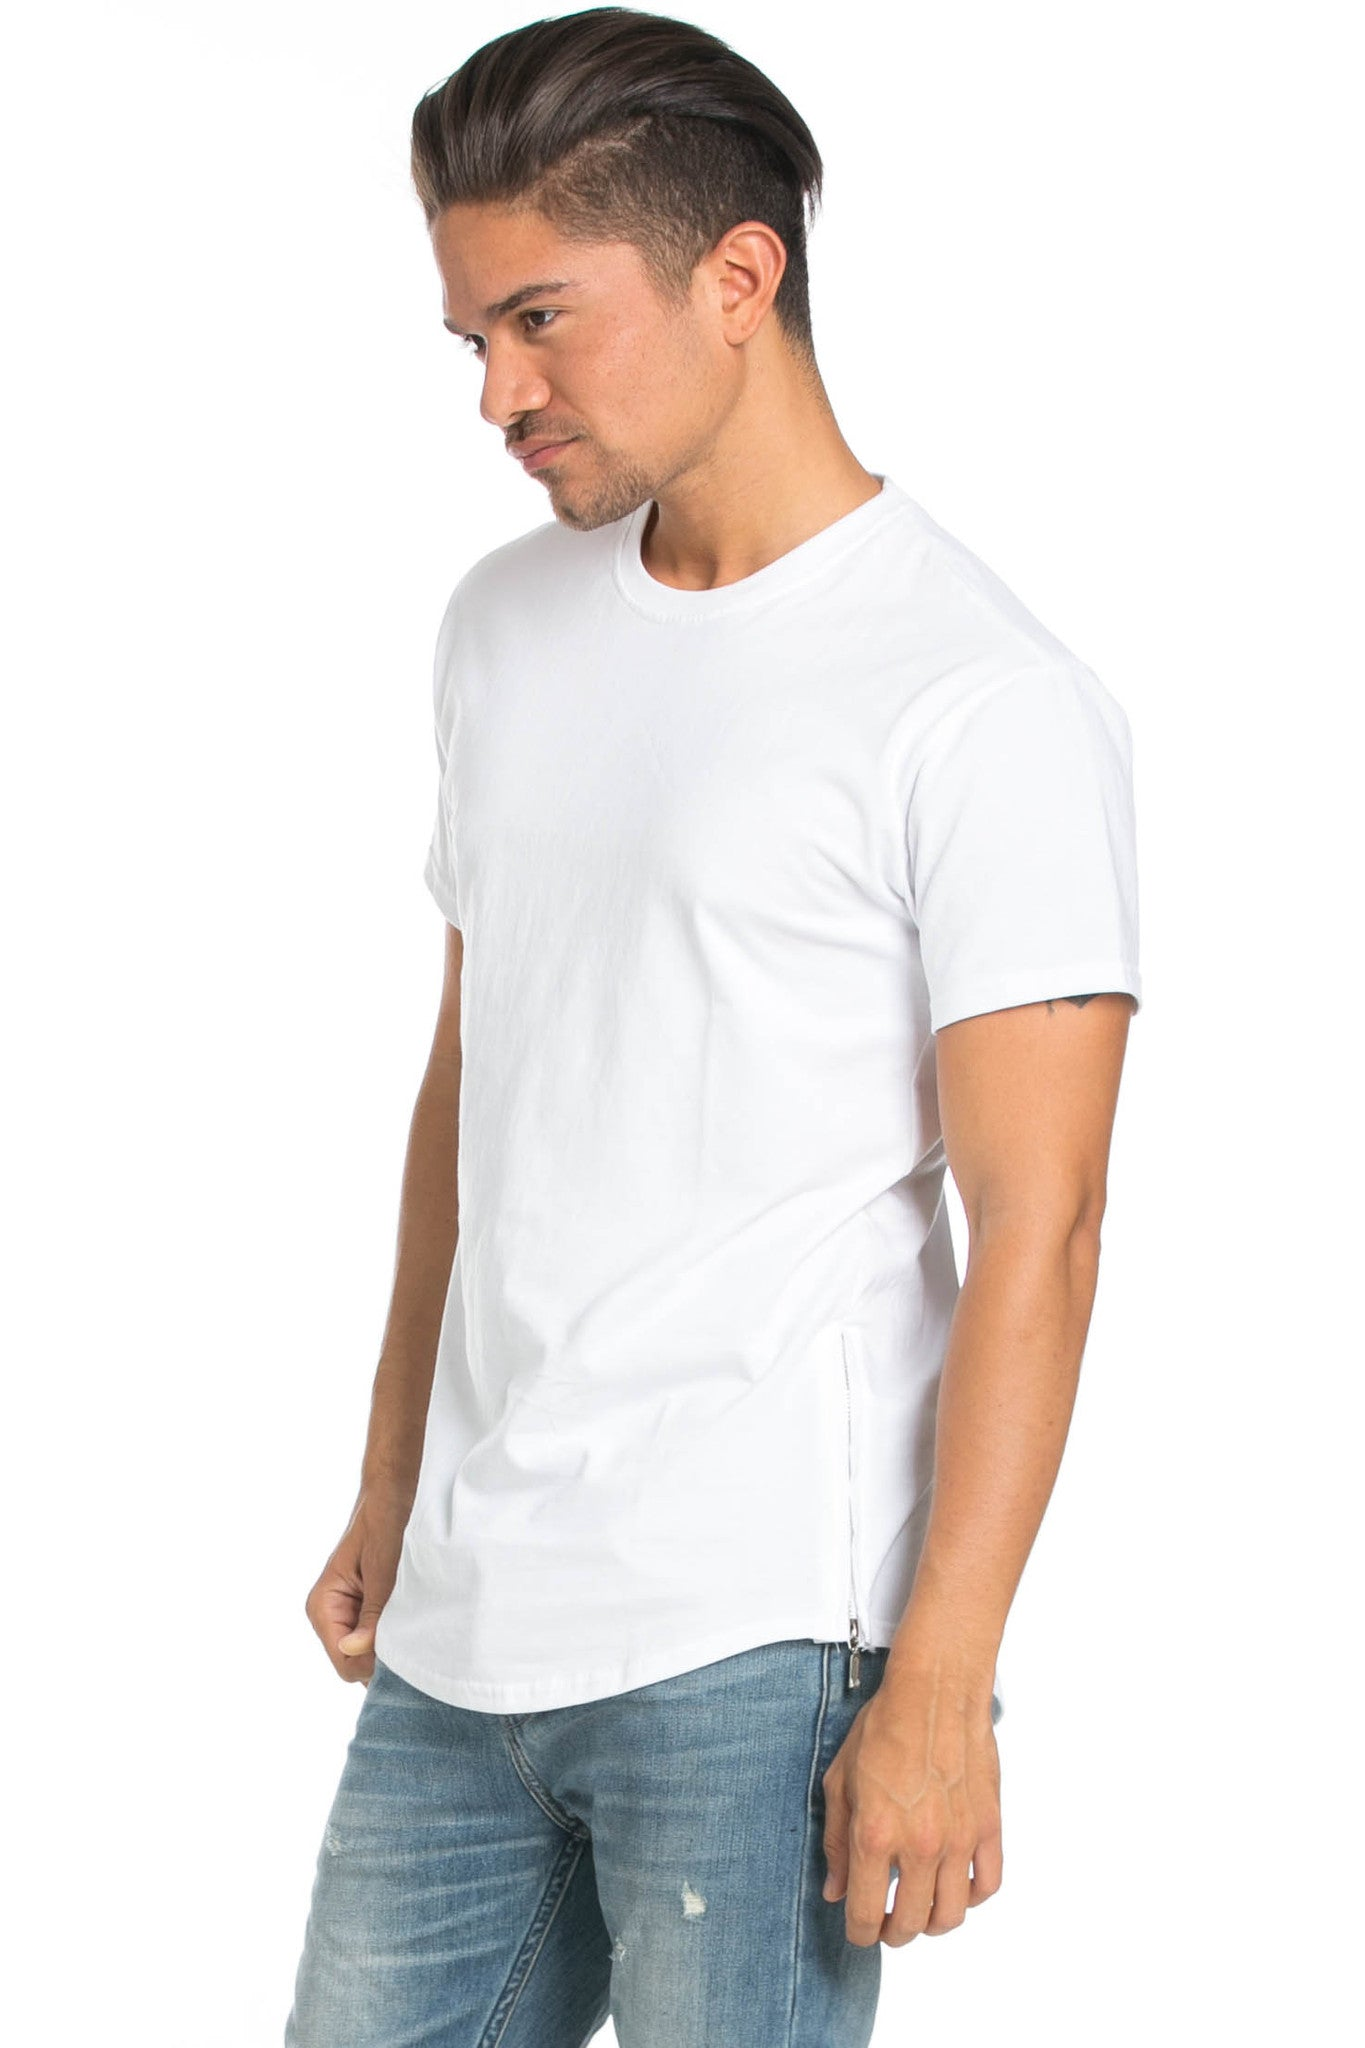 Men's Basic Zipper White T-Shirt - Tops - My Yuccie - 4